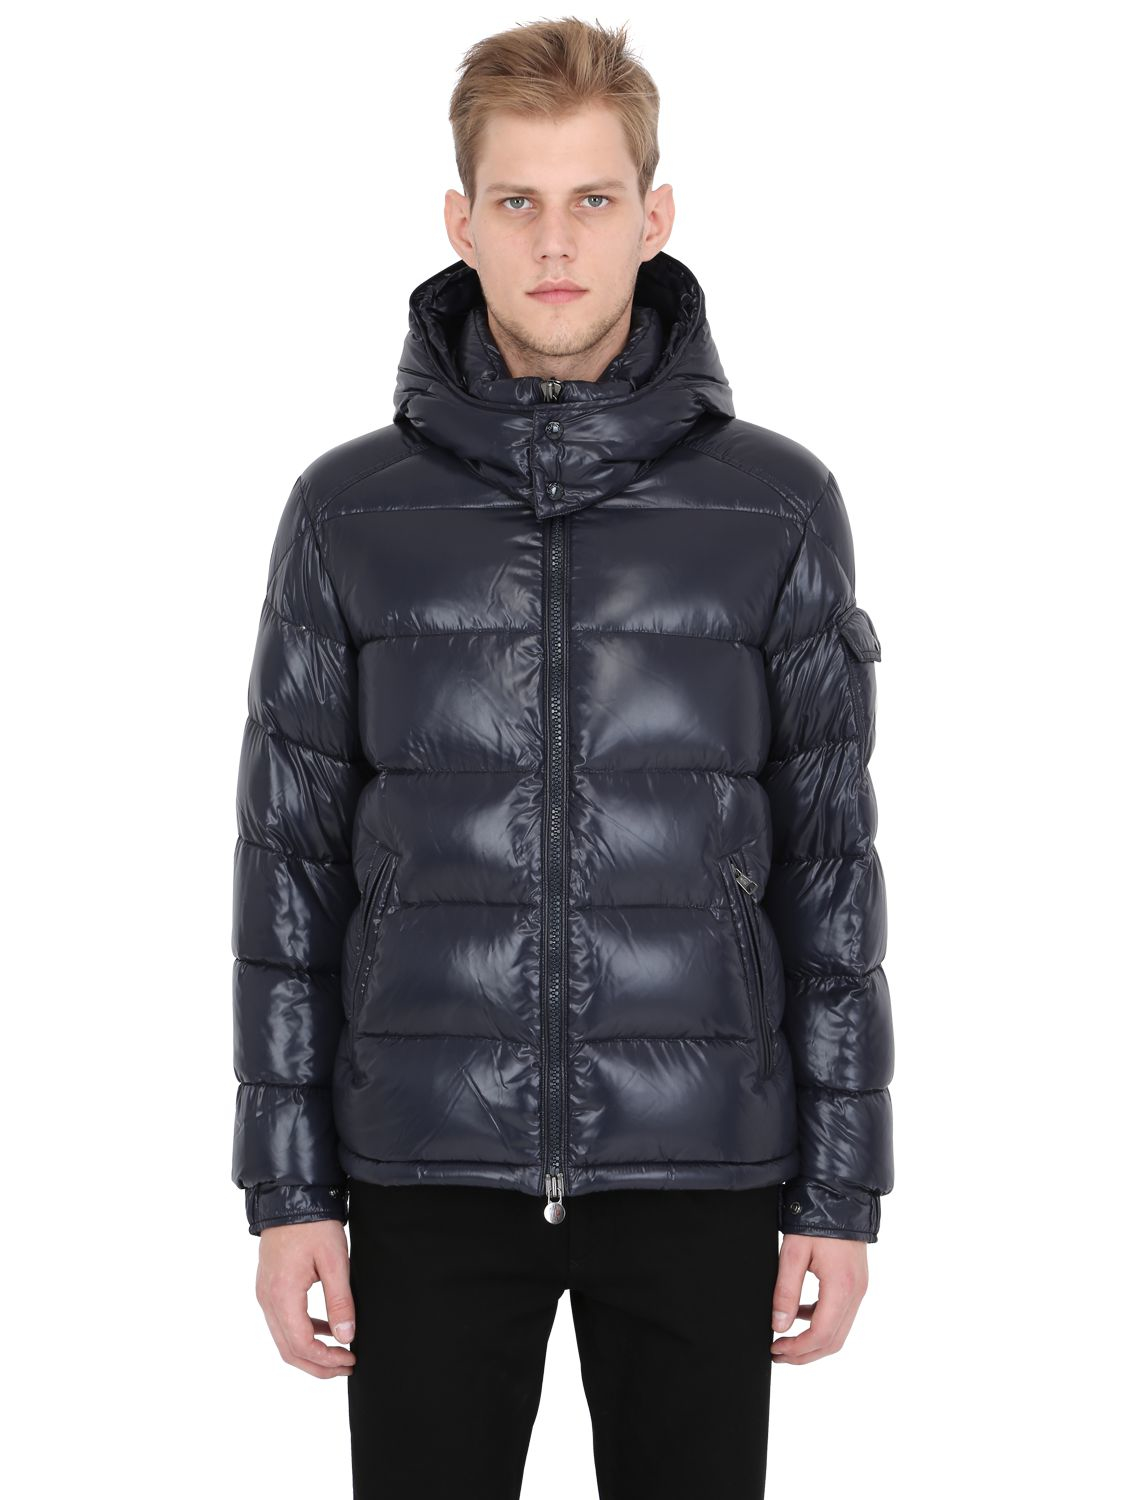 Marvellous Moncler Maya | Cute Balmain Leather Jacket for Men